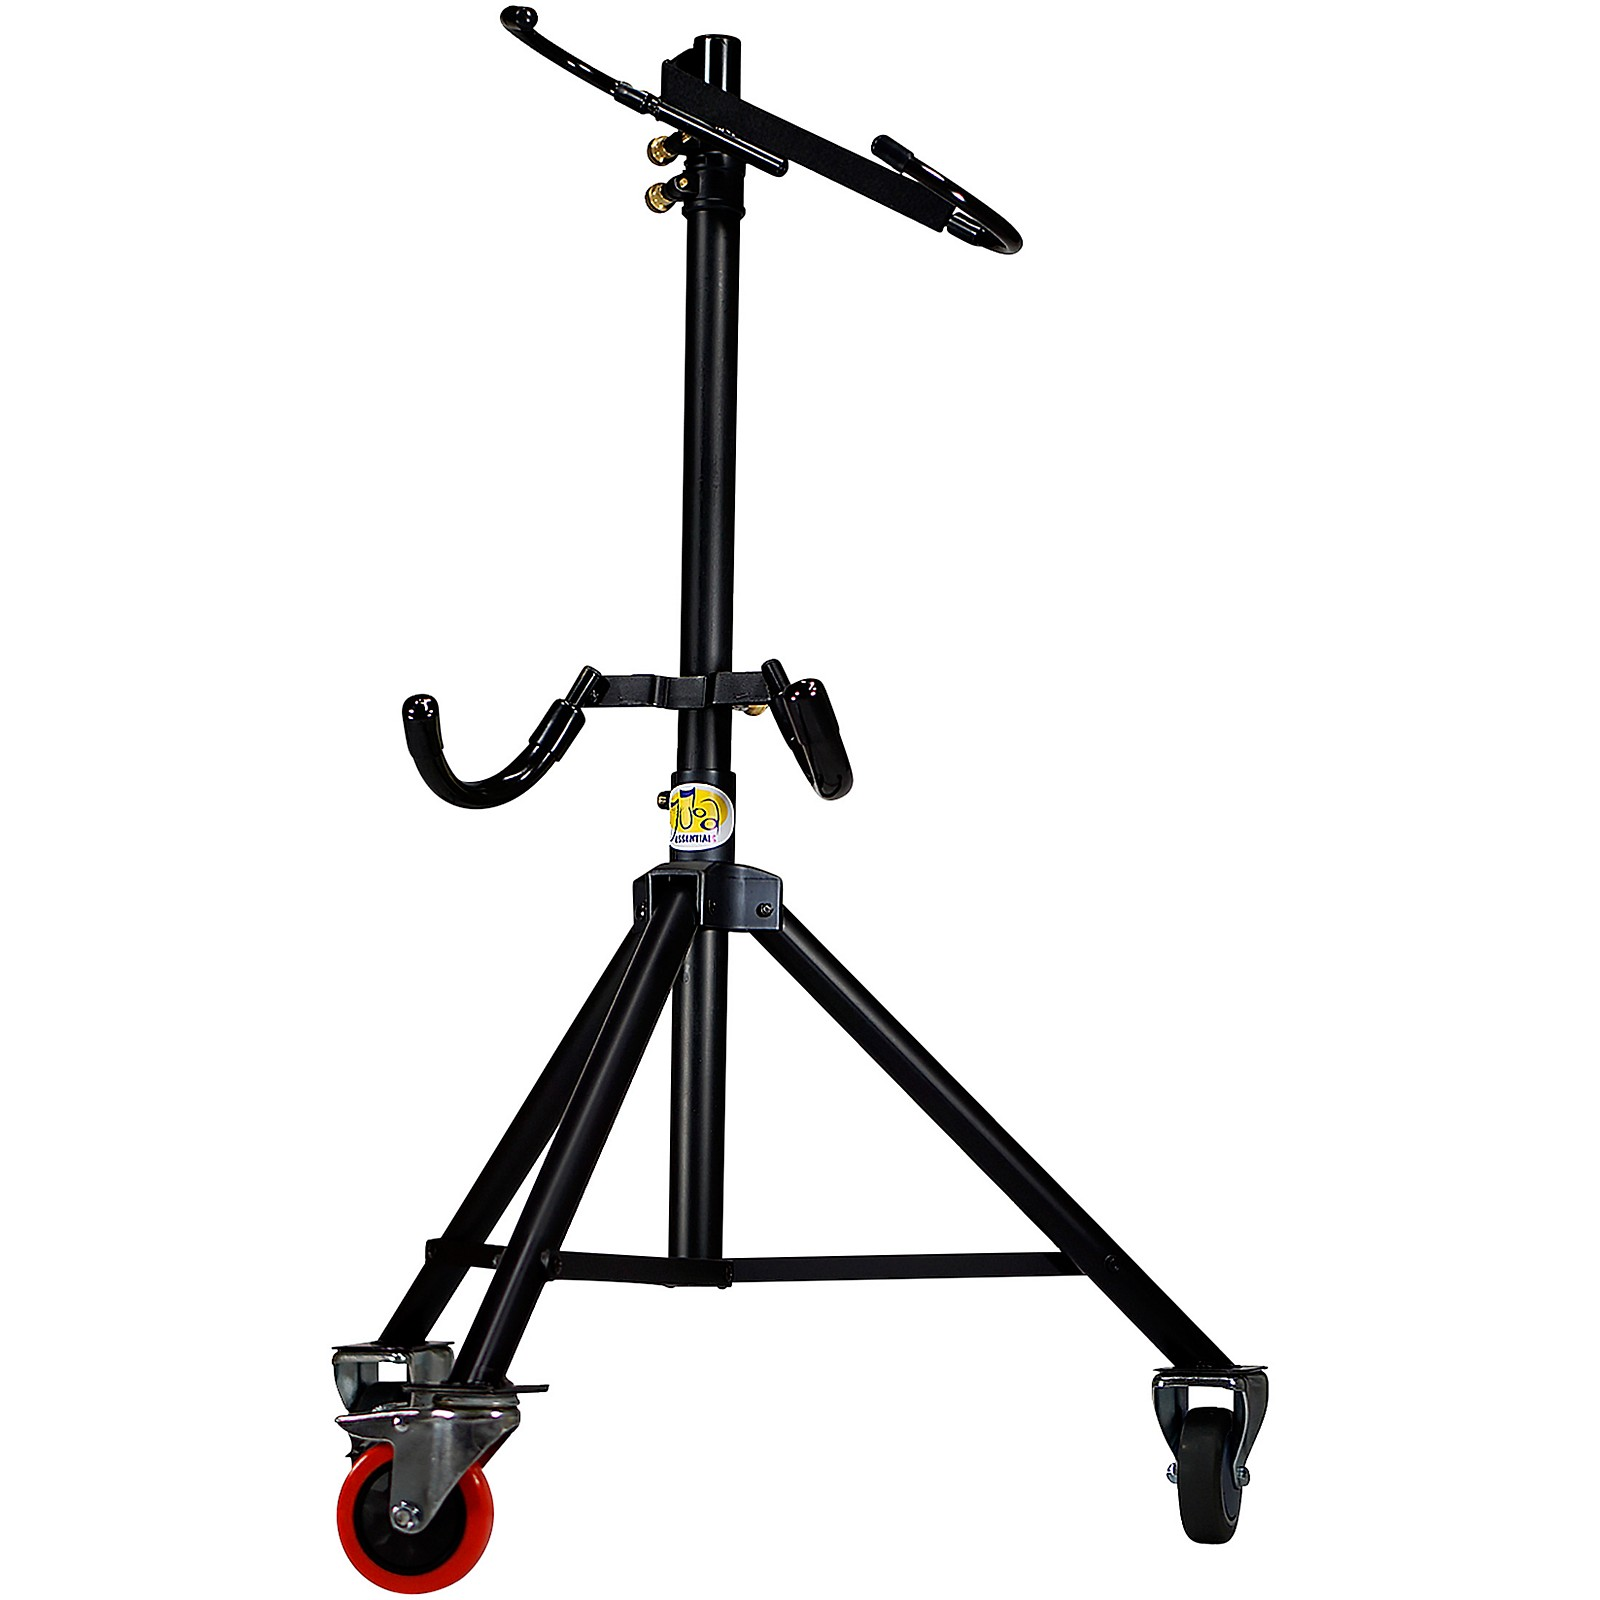 Tuba Essentials The Hug Adjustable Euphonium Stand for Right Side Mouthpiece Instruments